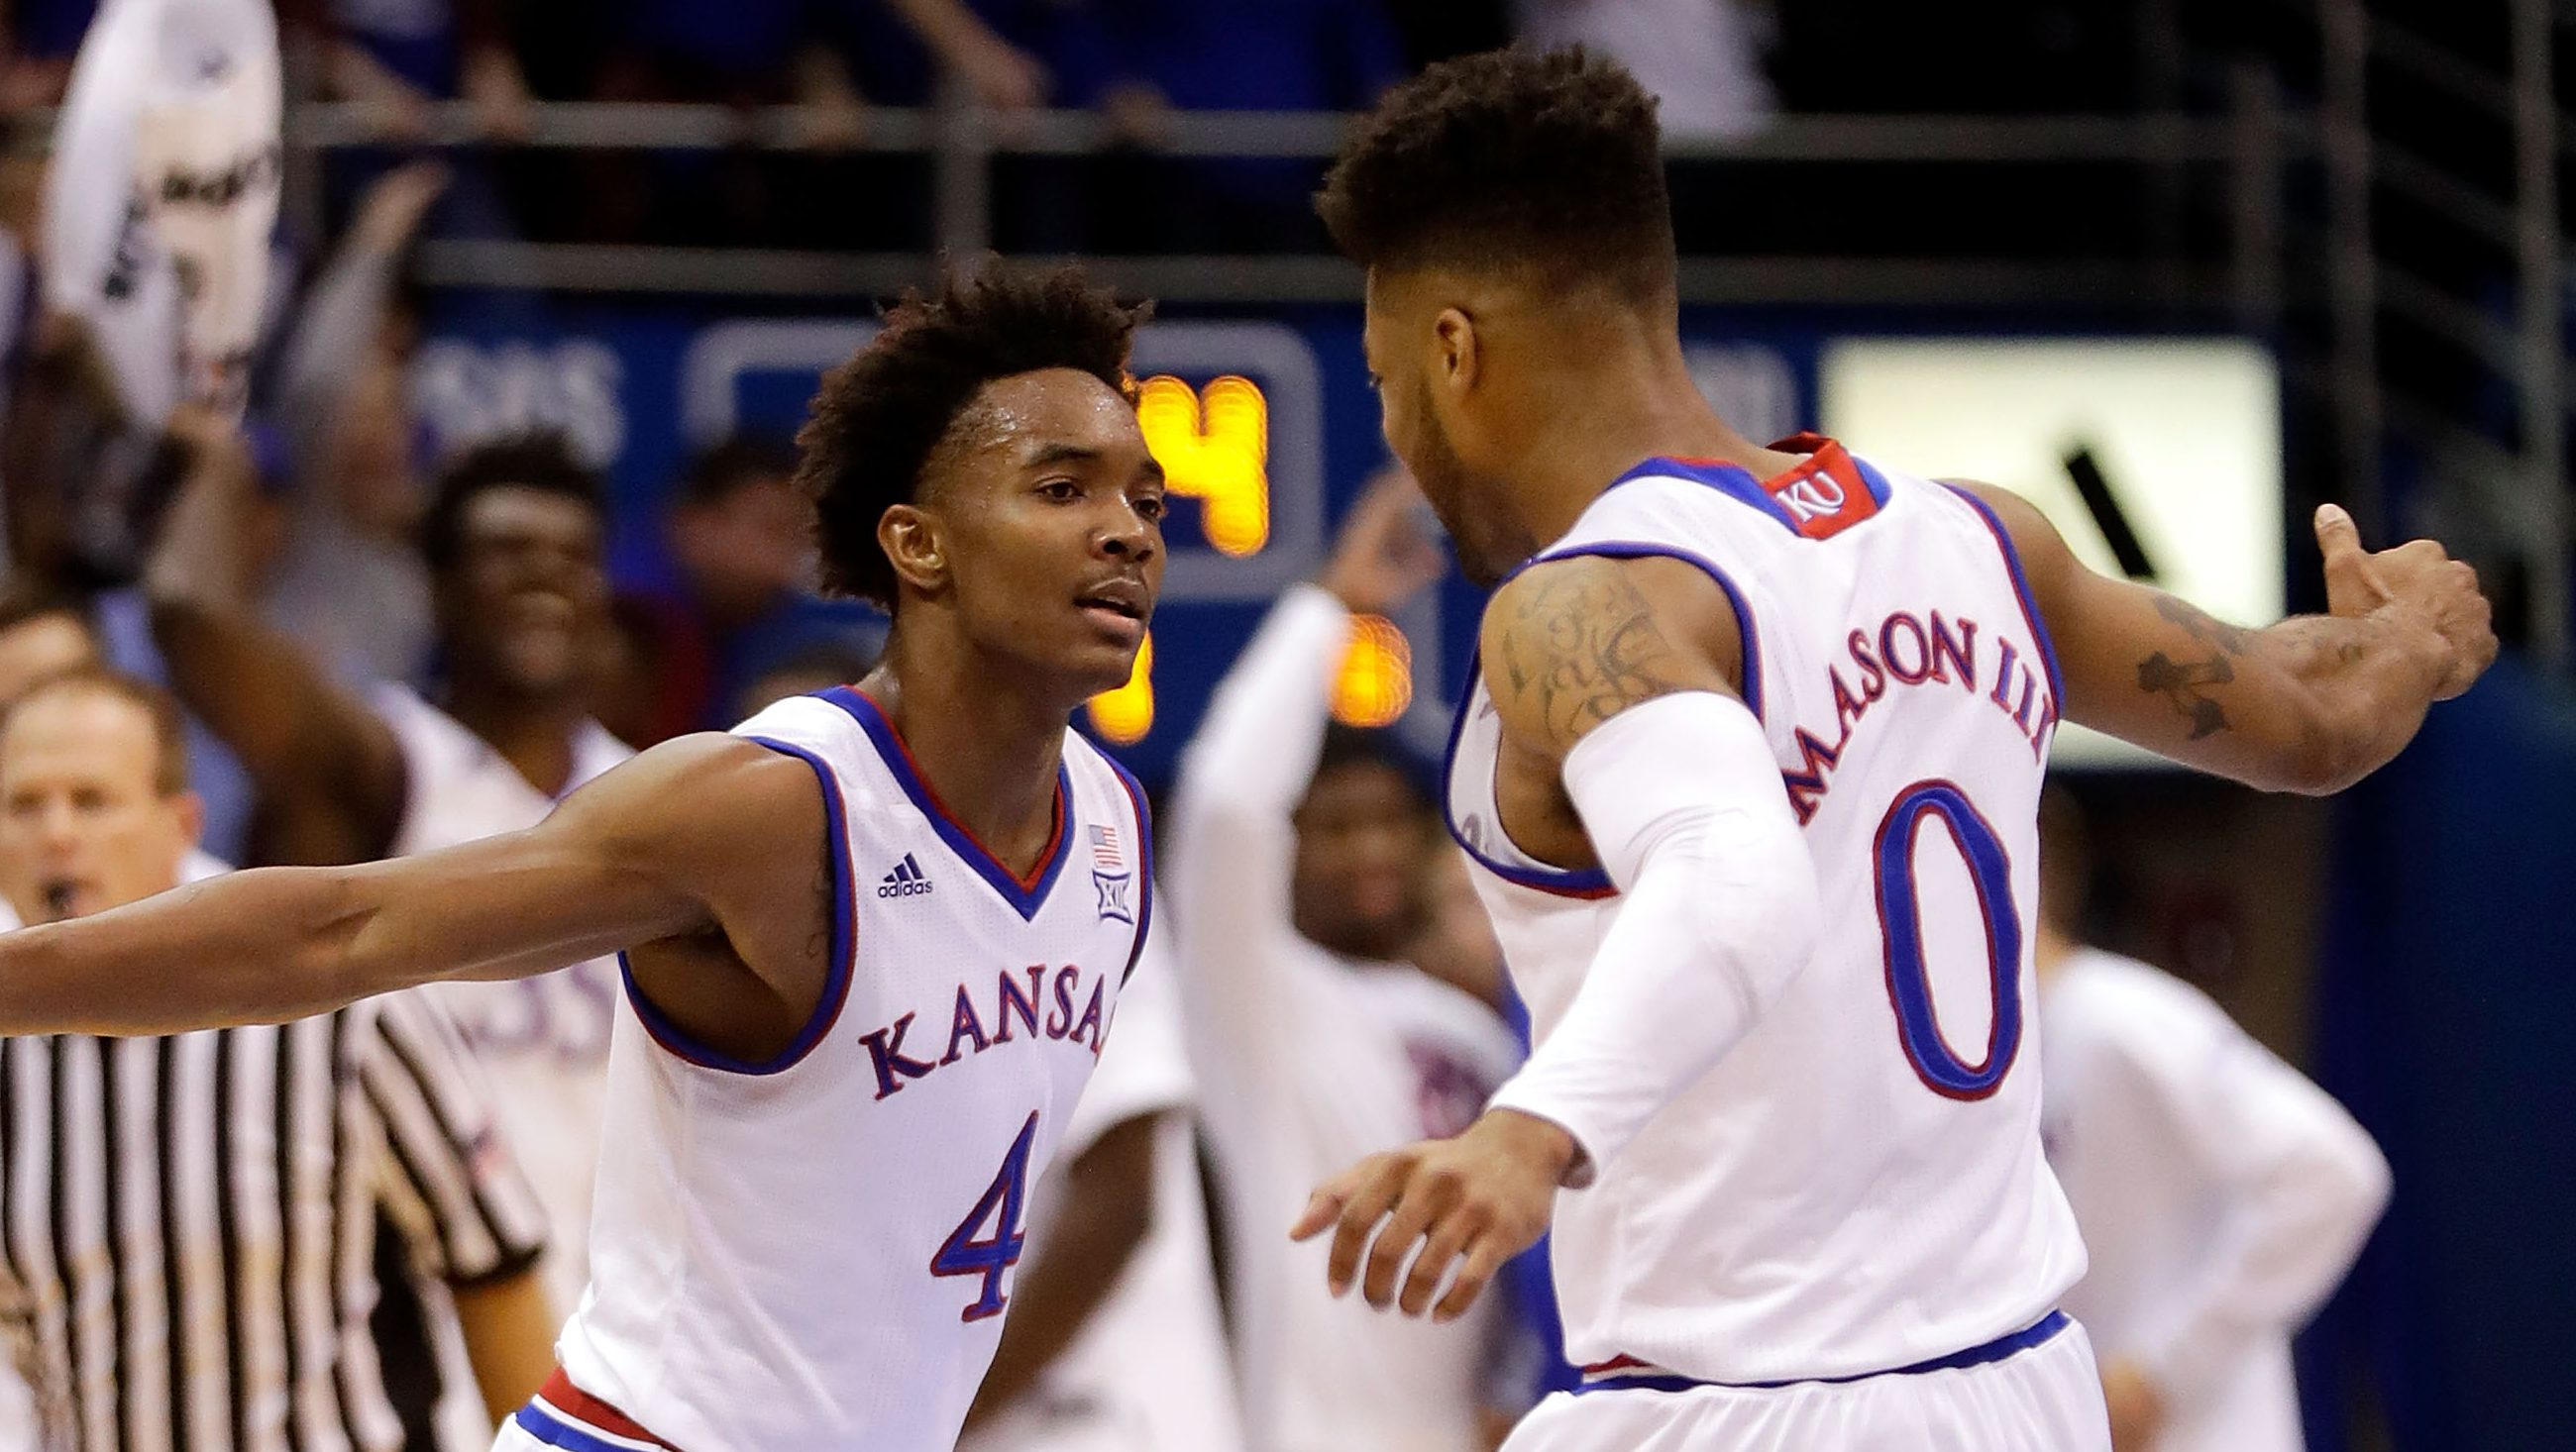 LAWRENCE, KS - DECEMBER 03:  Devonte' Graham #4 of the Kansas Jayhawks celebrates with Frank Mason III #0 after making a three-pointer during the game against the Stanford Cardinal at Allen Fieldhouse on December 3, 2016 in Lawrence, Kansas.  (Photo by Jamie Squire/Getty Images)